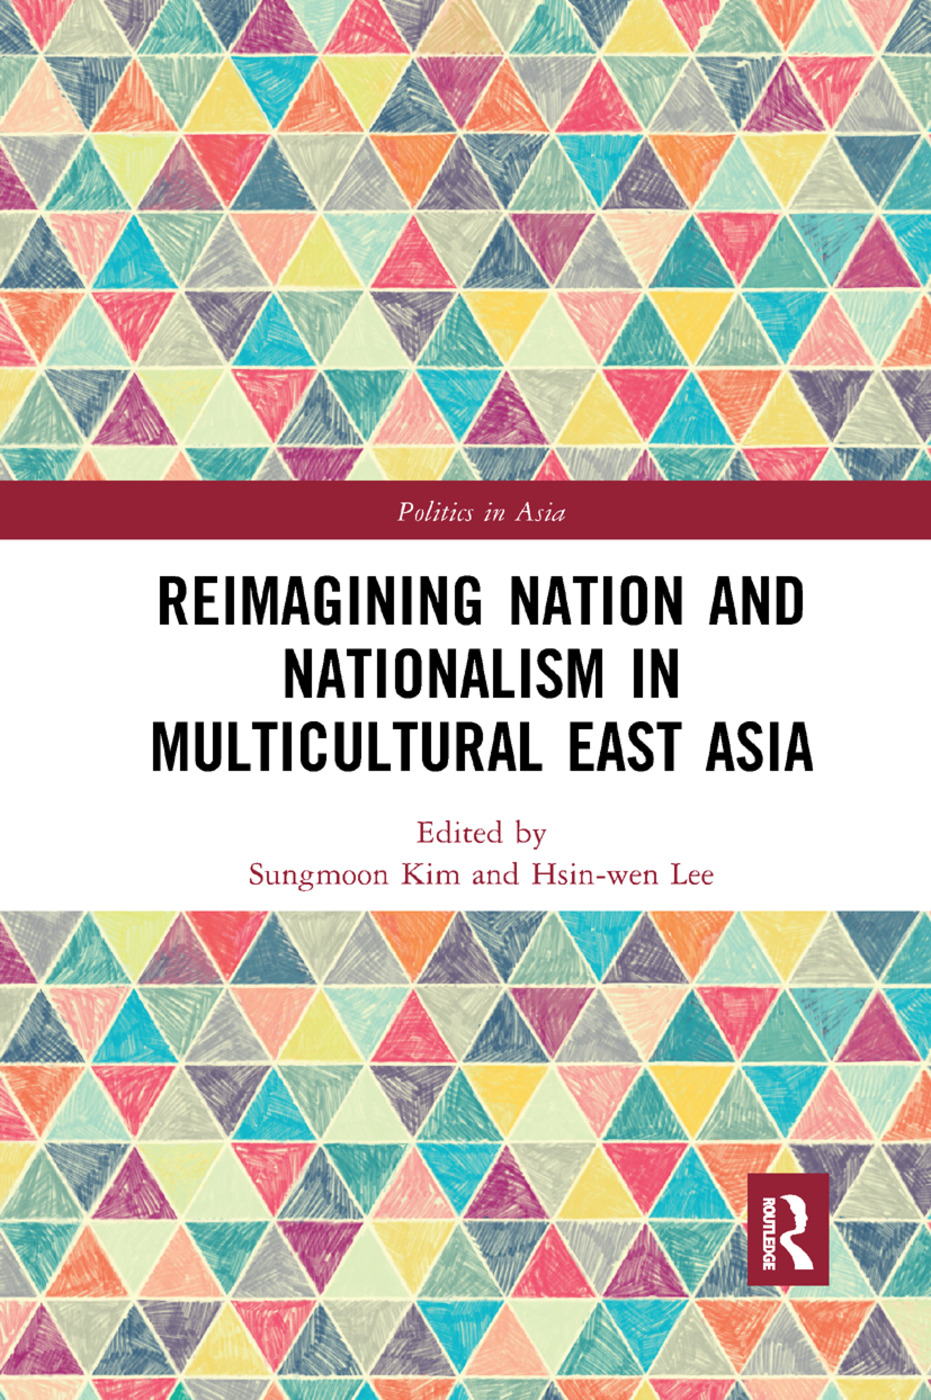 Reimagining Nation and Nationalism in Multicultural East Asia book cover